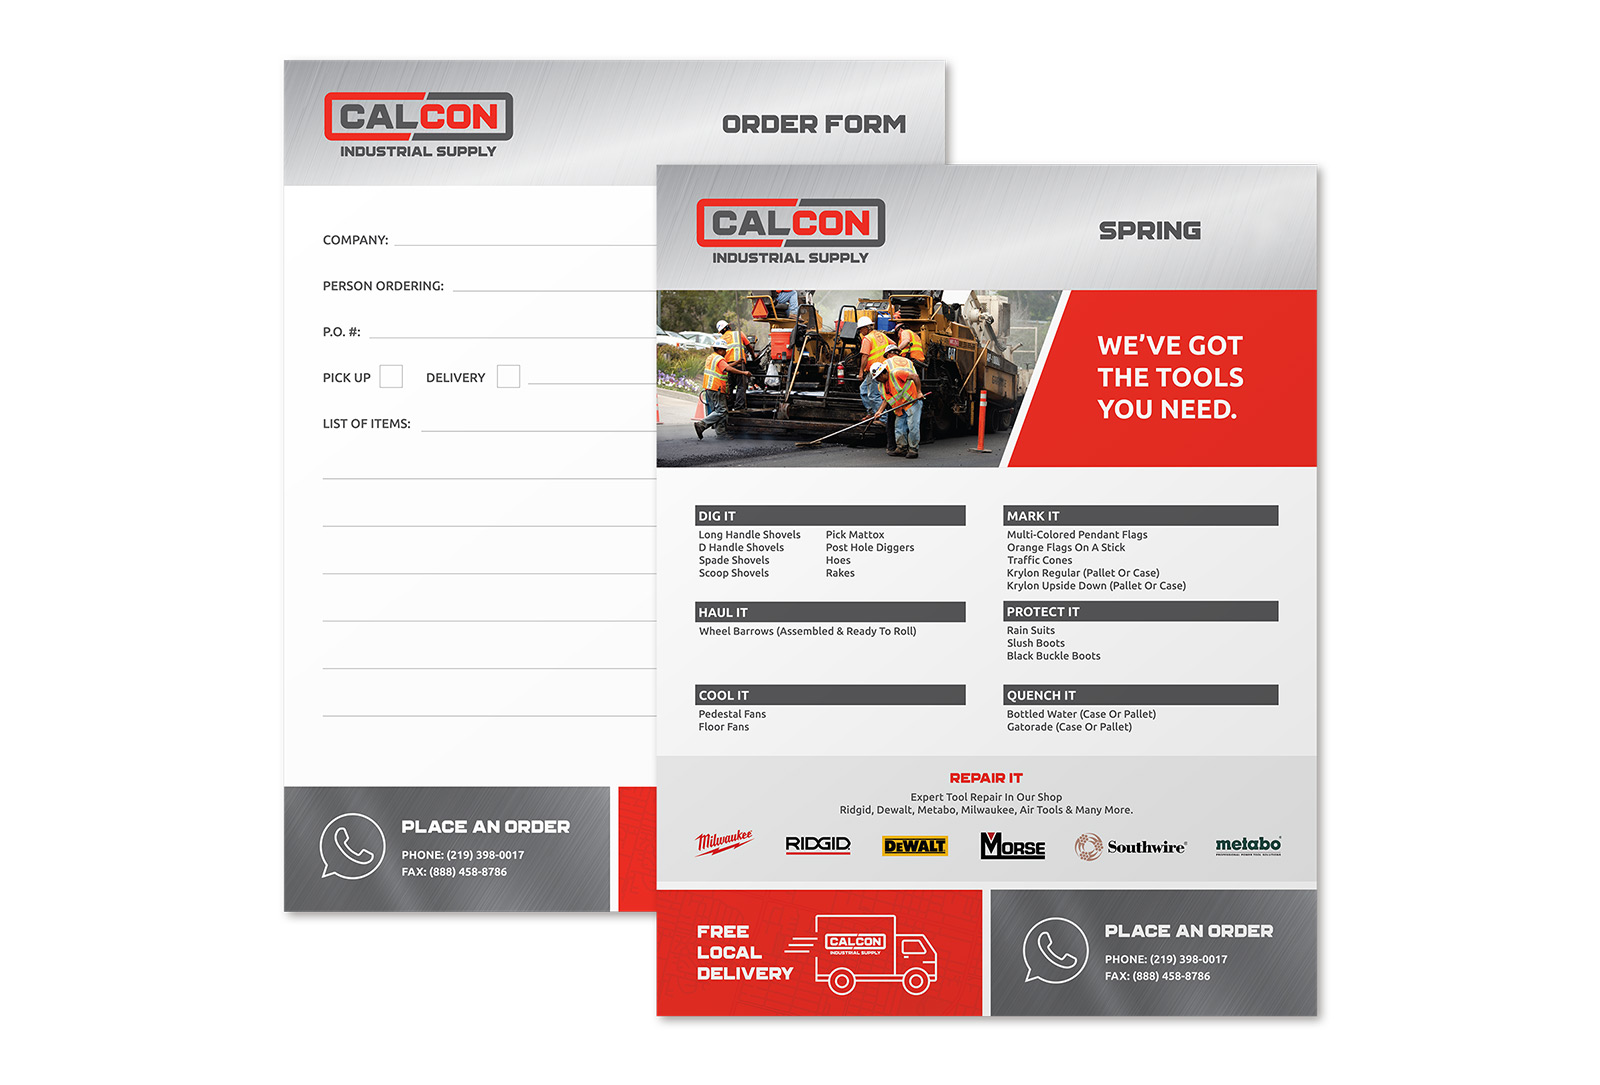 CalCon order form graphic design